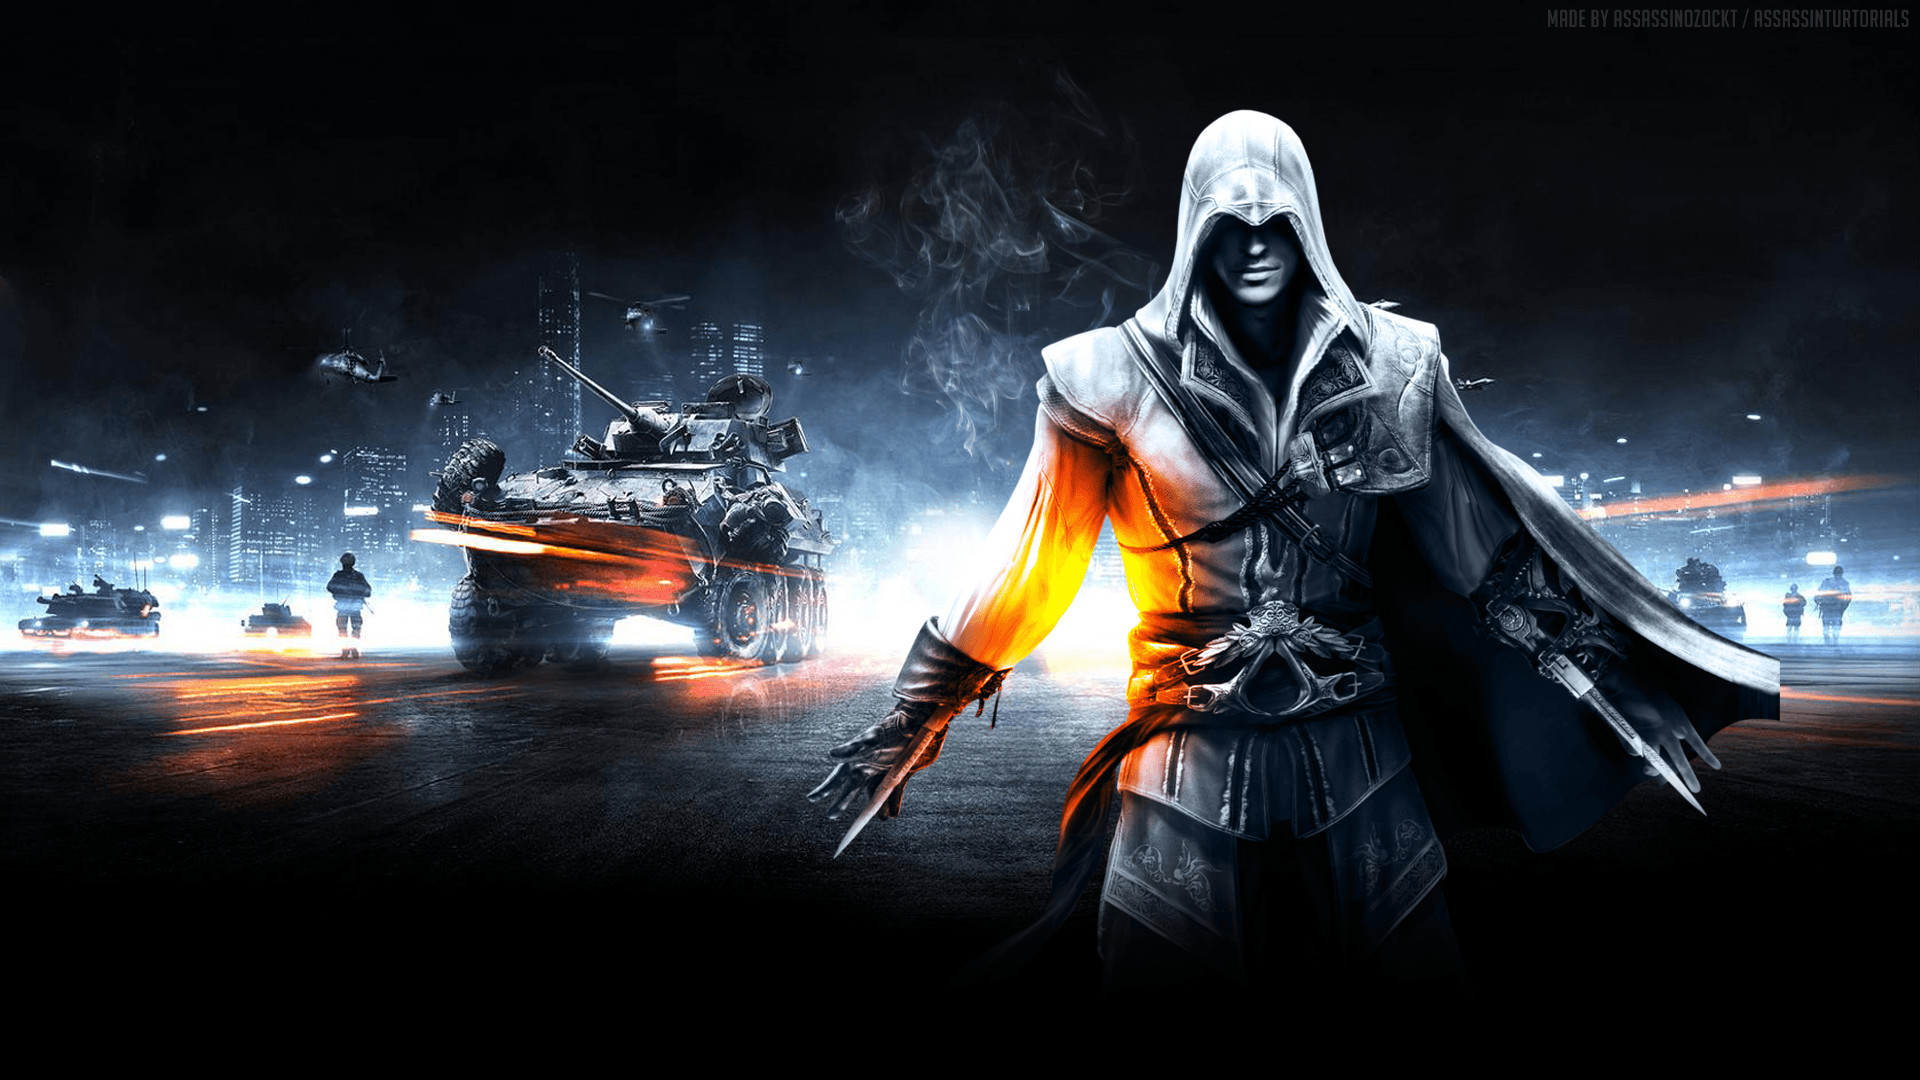 HD Wallpapers For PC 1080p Free Download | Best Games Wallpapers |  Pinterest | Hd wallpaper and Wallpaper